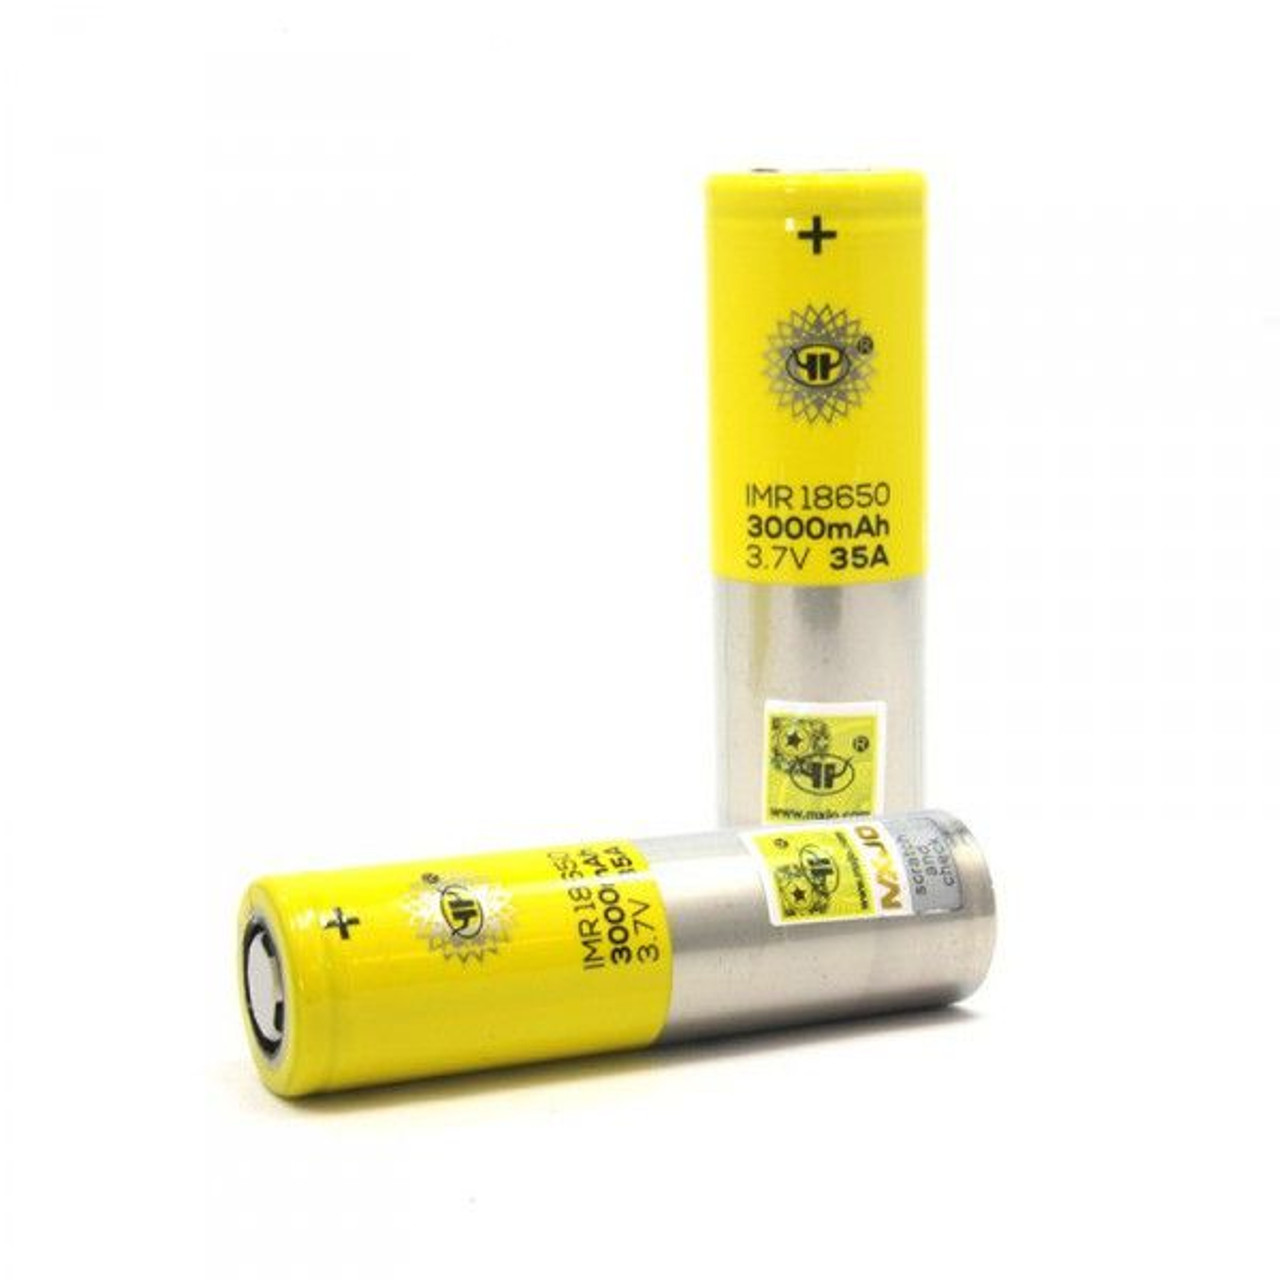 MXJO 18650 3000mAh 35A IMR Battery